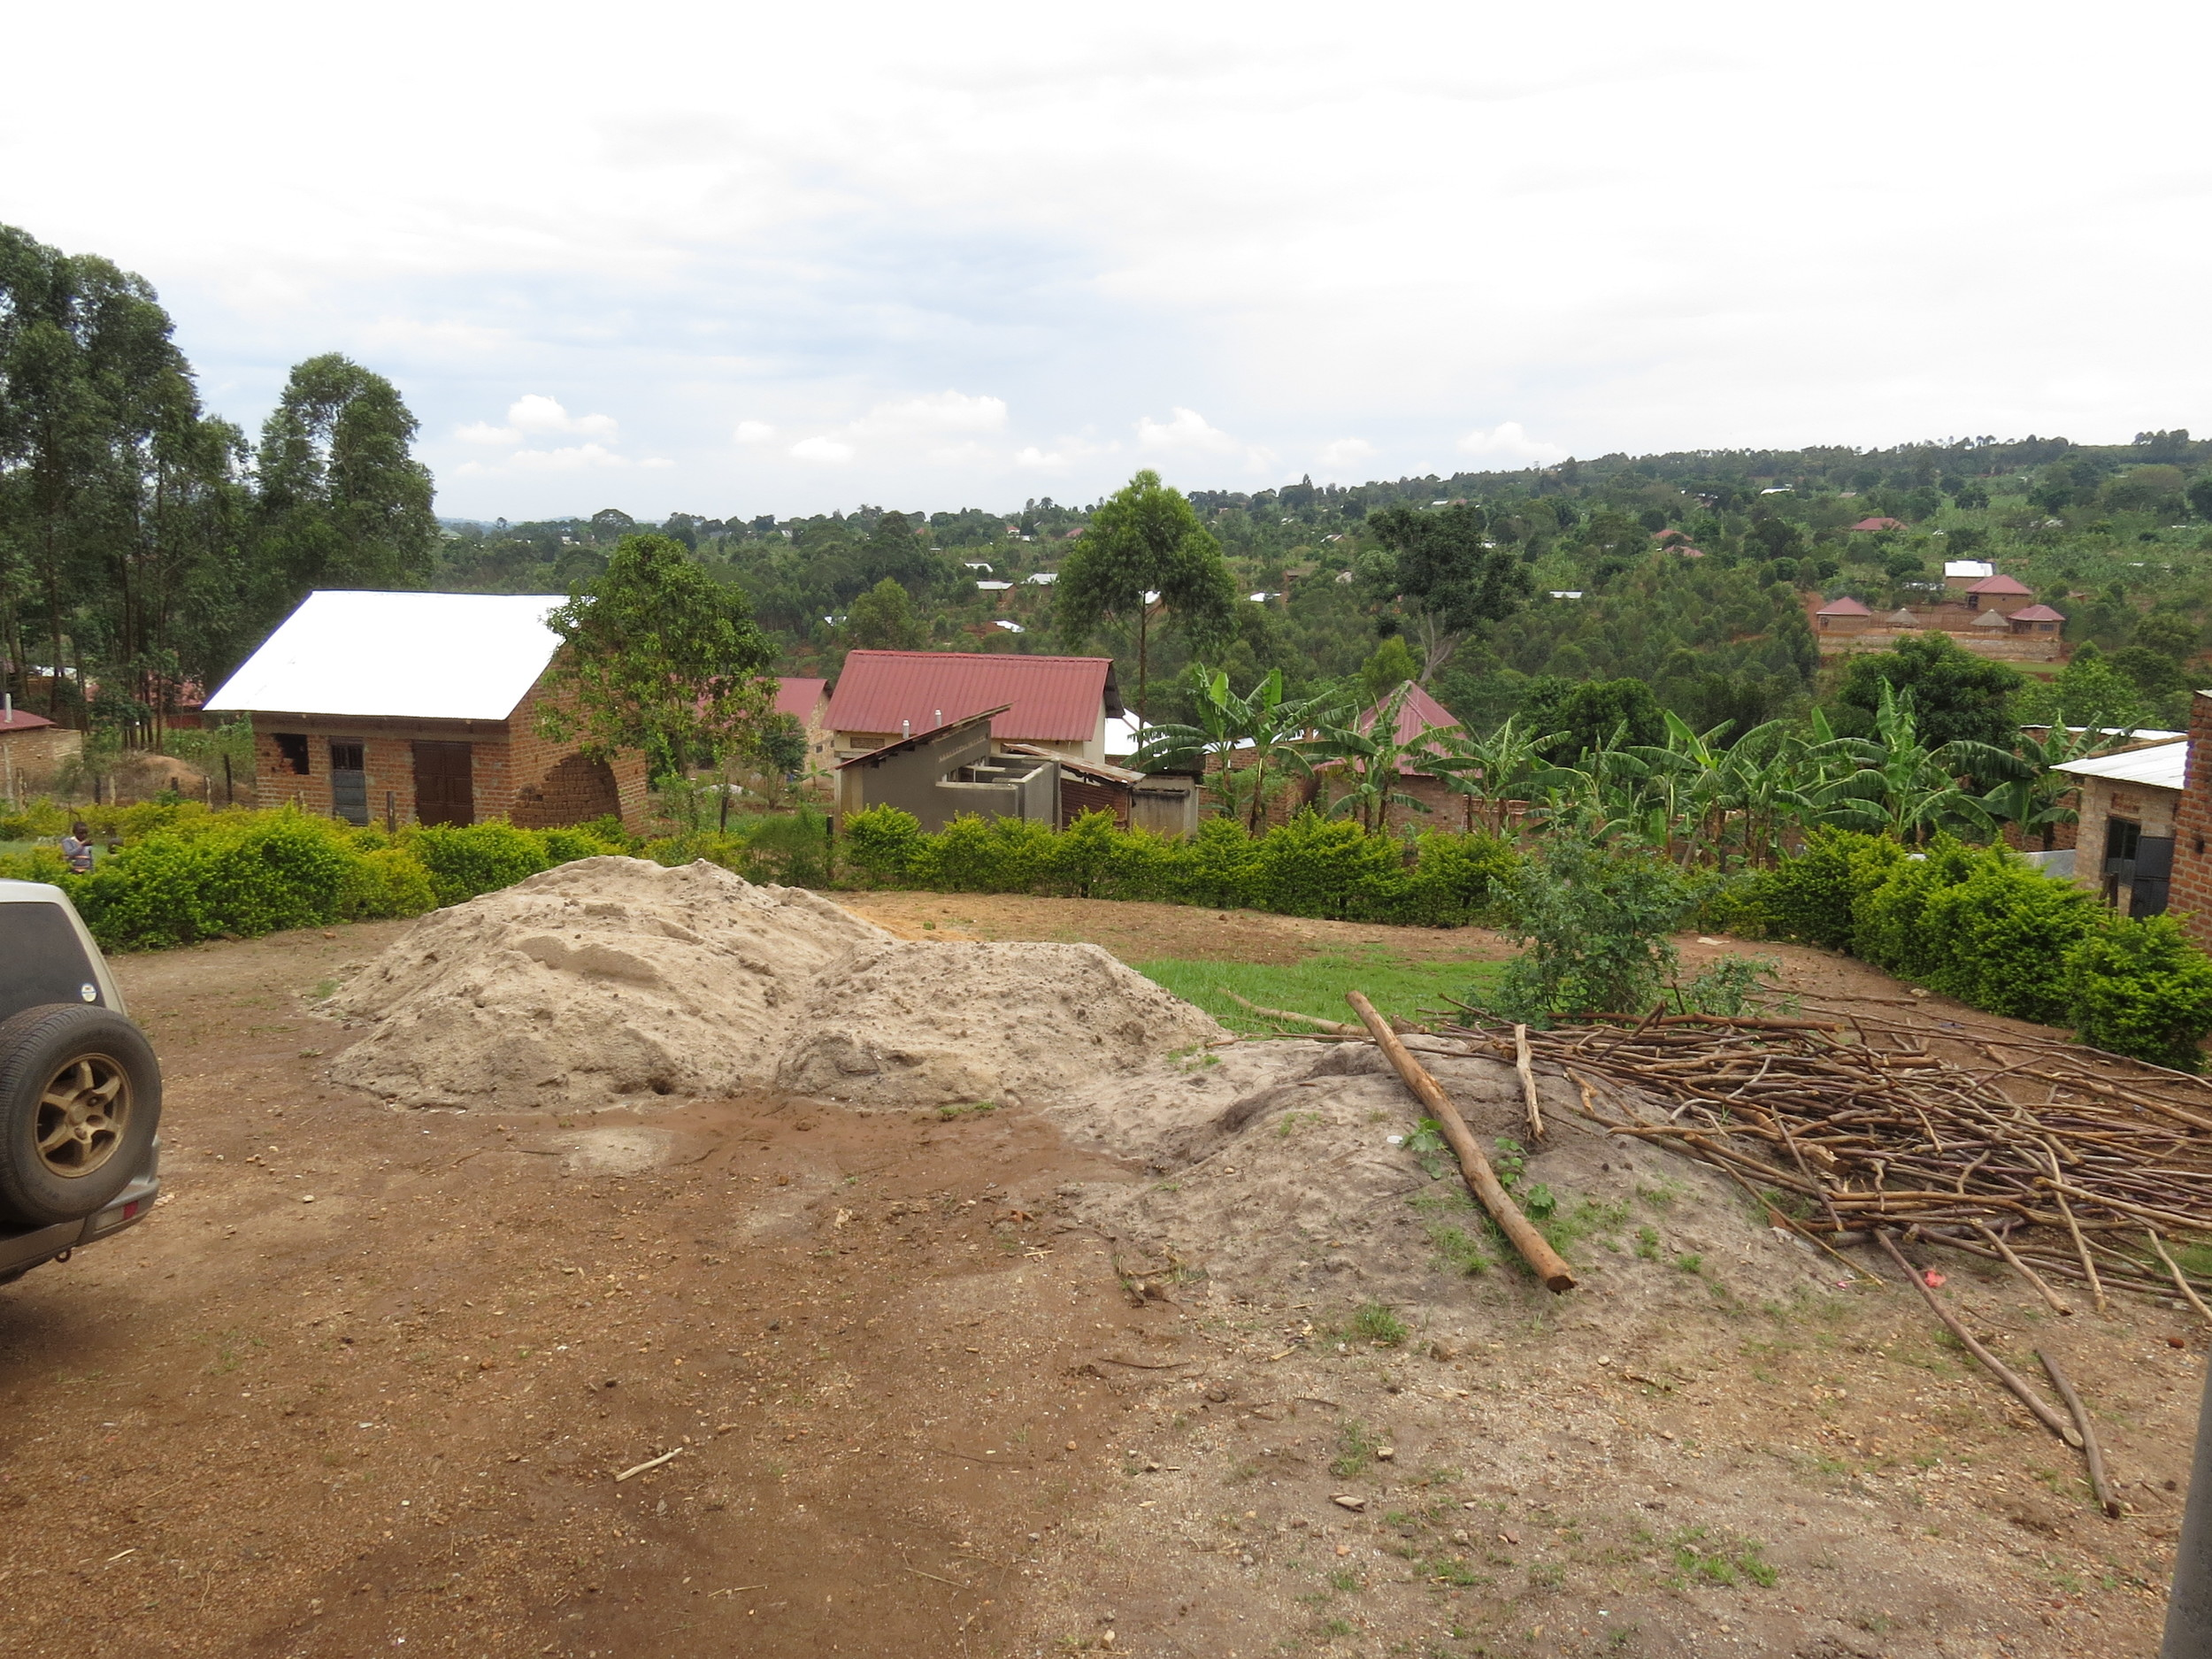 Land on which more classrooms are planned